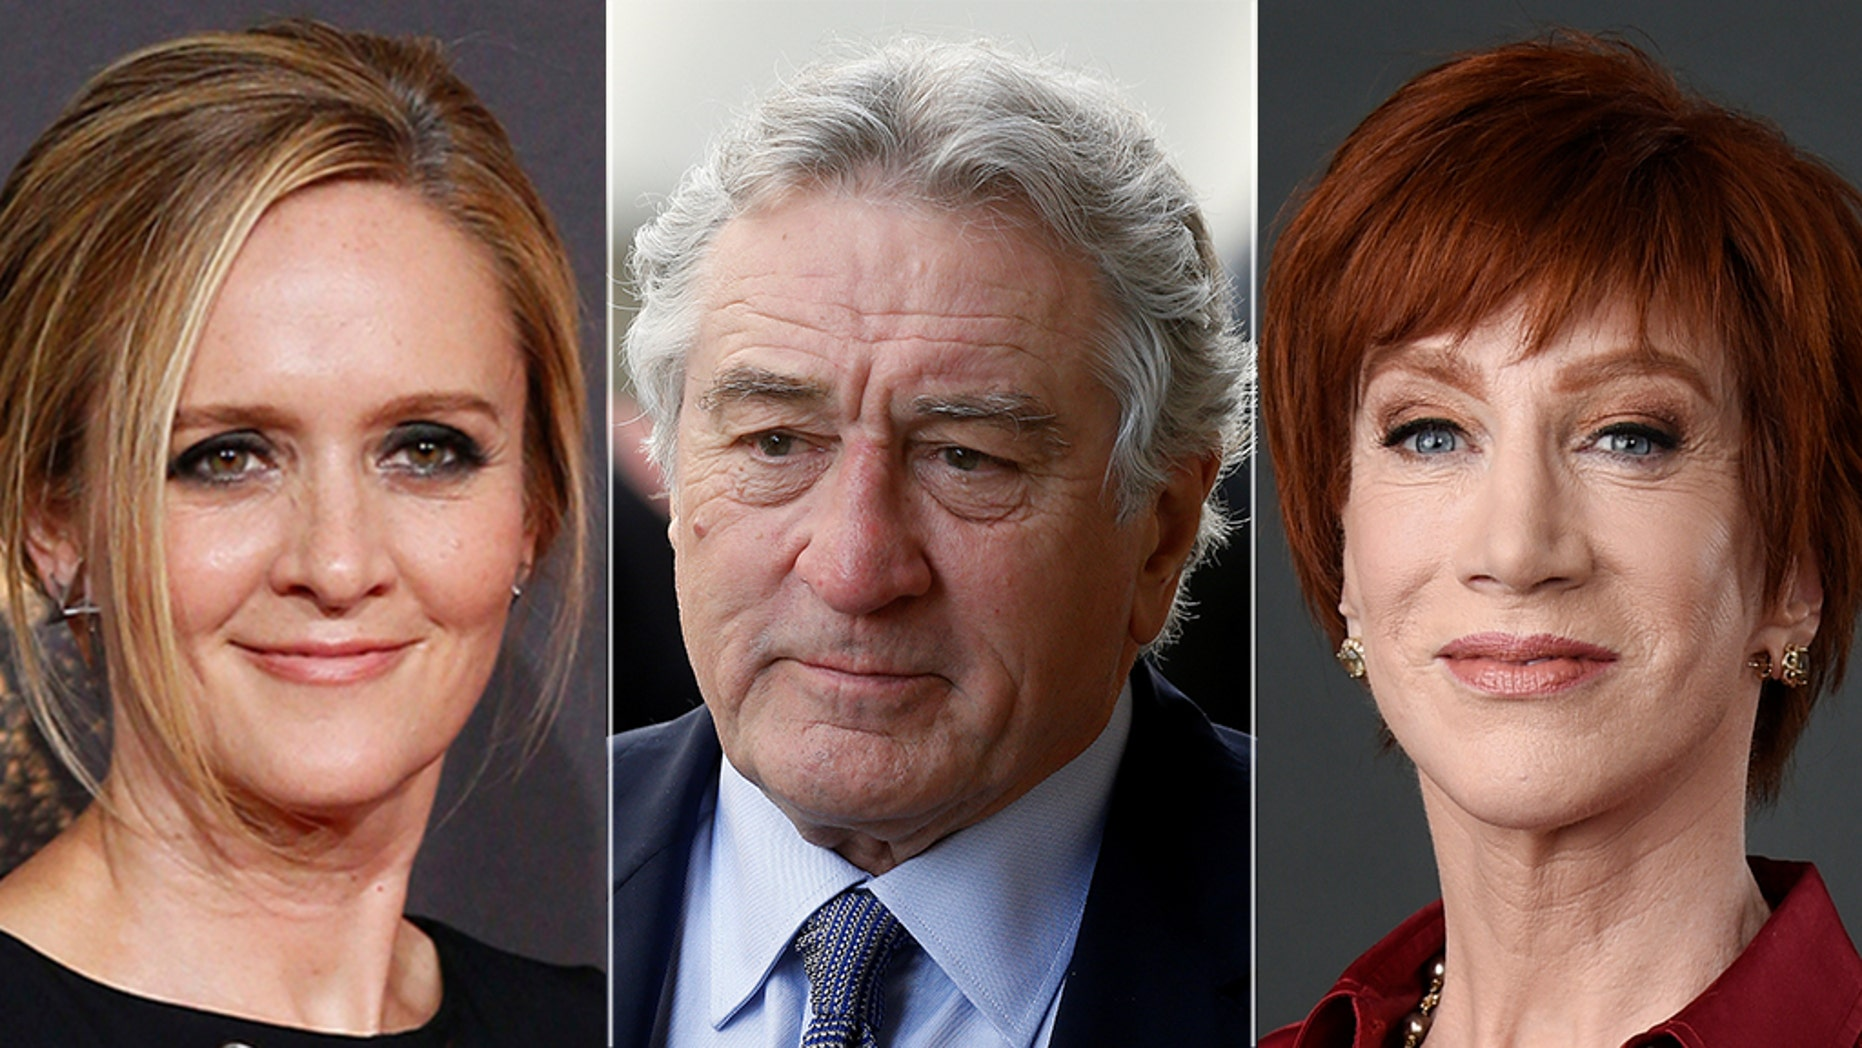 Samantha Bee, Robert De Niro and Kathy Griffin have famously used profanity to attack President Trump.